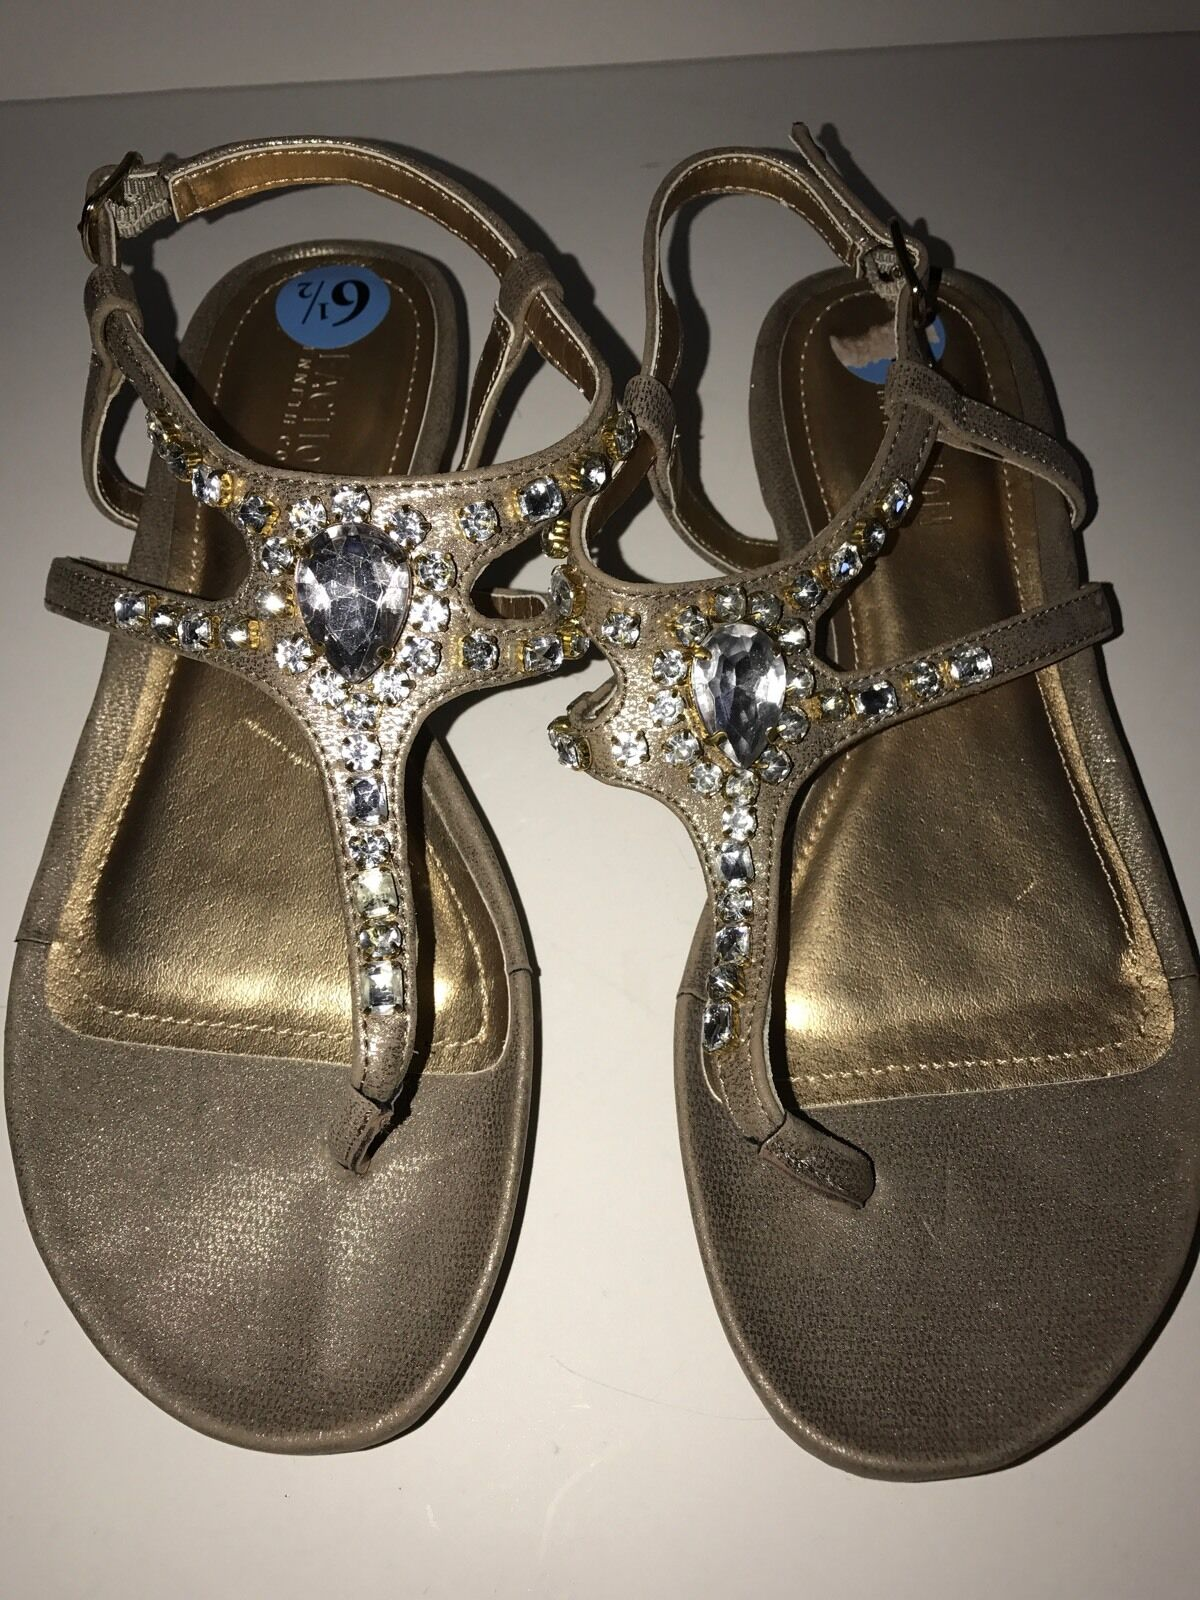 BORN CROWN ALCALA II WOMENS GOLD-TEXTURED T-STRAP LEATHER SANDALS 7M NEW